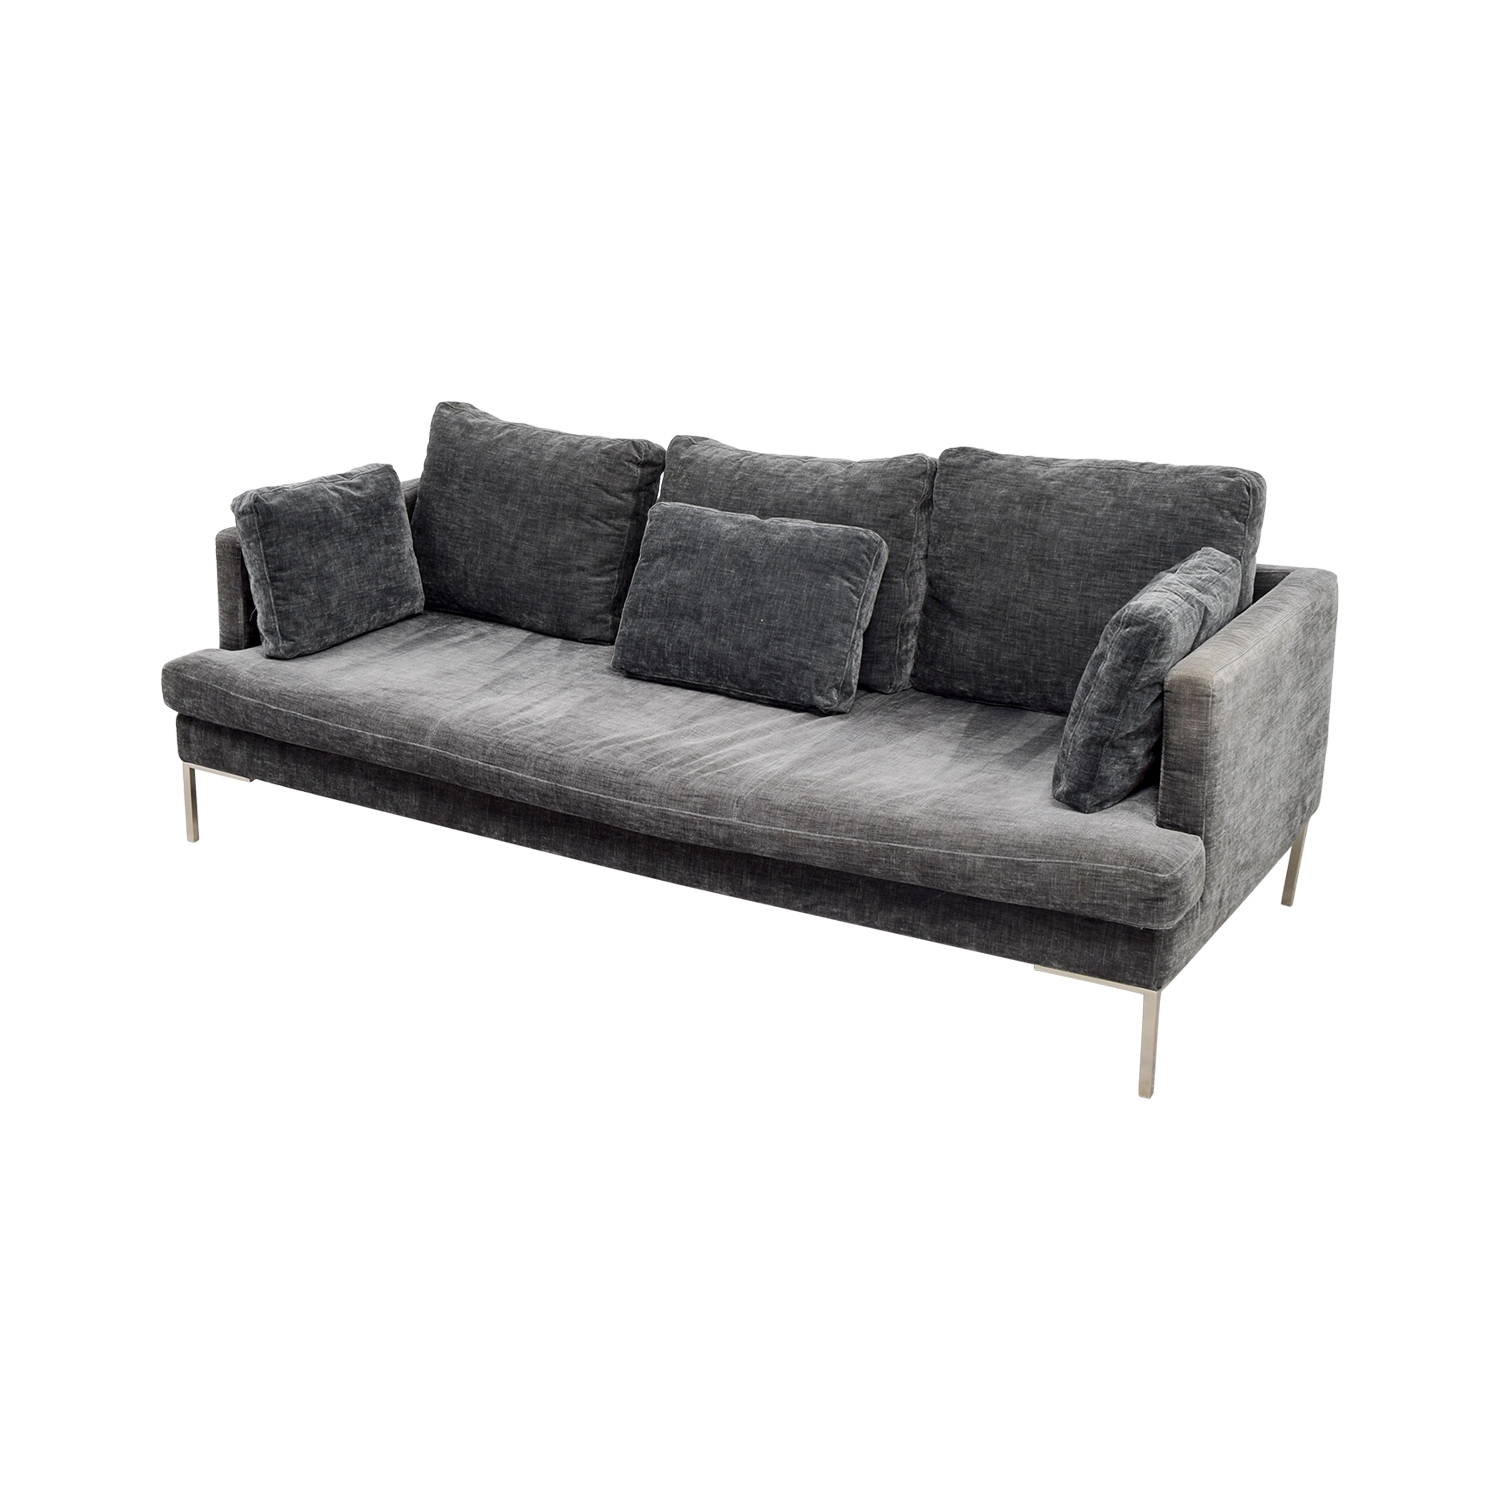 60 off boconcept boconcept istra 2 sofa sofas. Black Bedroom Furniture Sets. Home Design Ideas